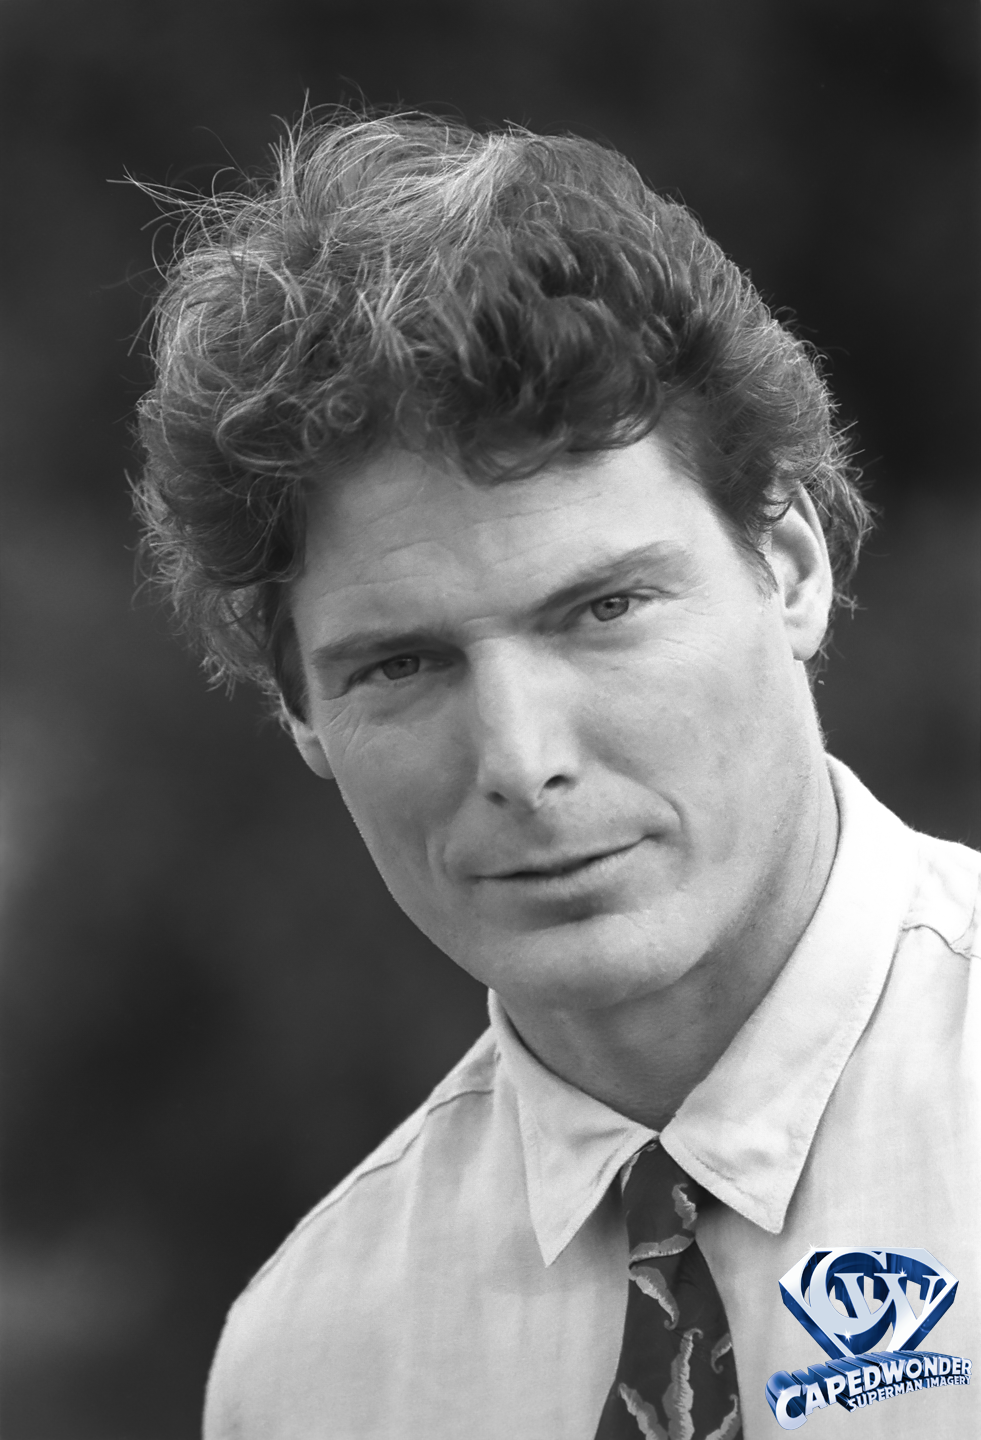 CW-Christopher-Reeve-B&W-headshot-1988